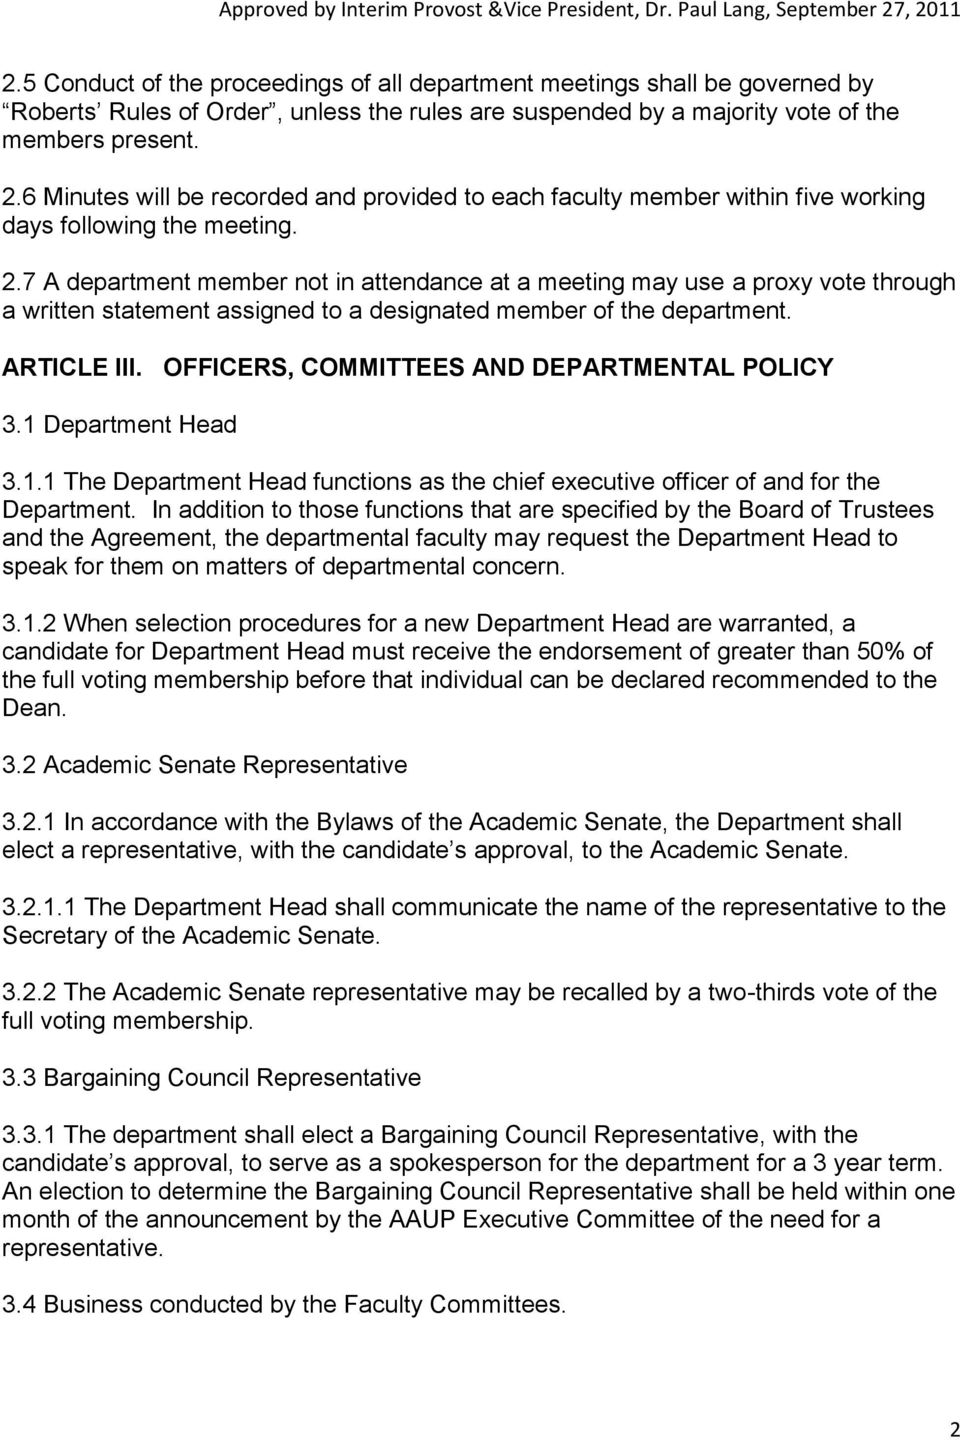 7 A department member not in attendance at a meeting may use a proxy vote through a written statement assigned to a designated member of the department. ARTICLE III.